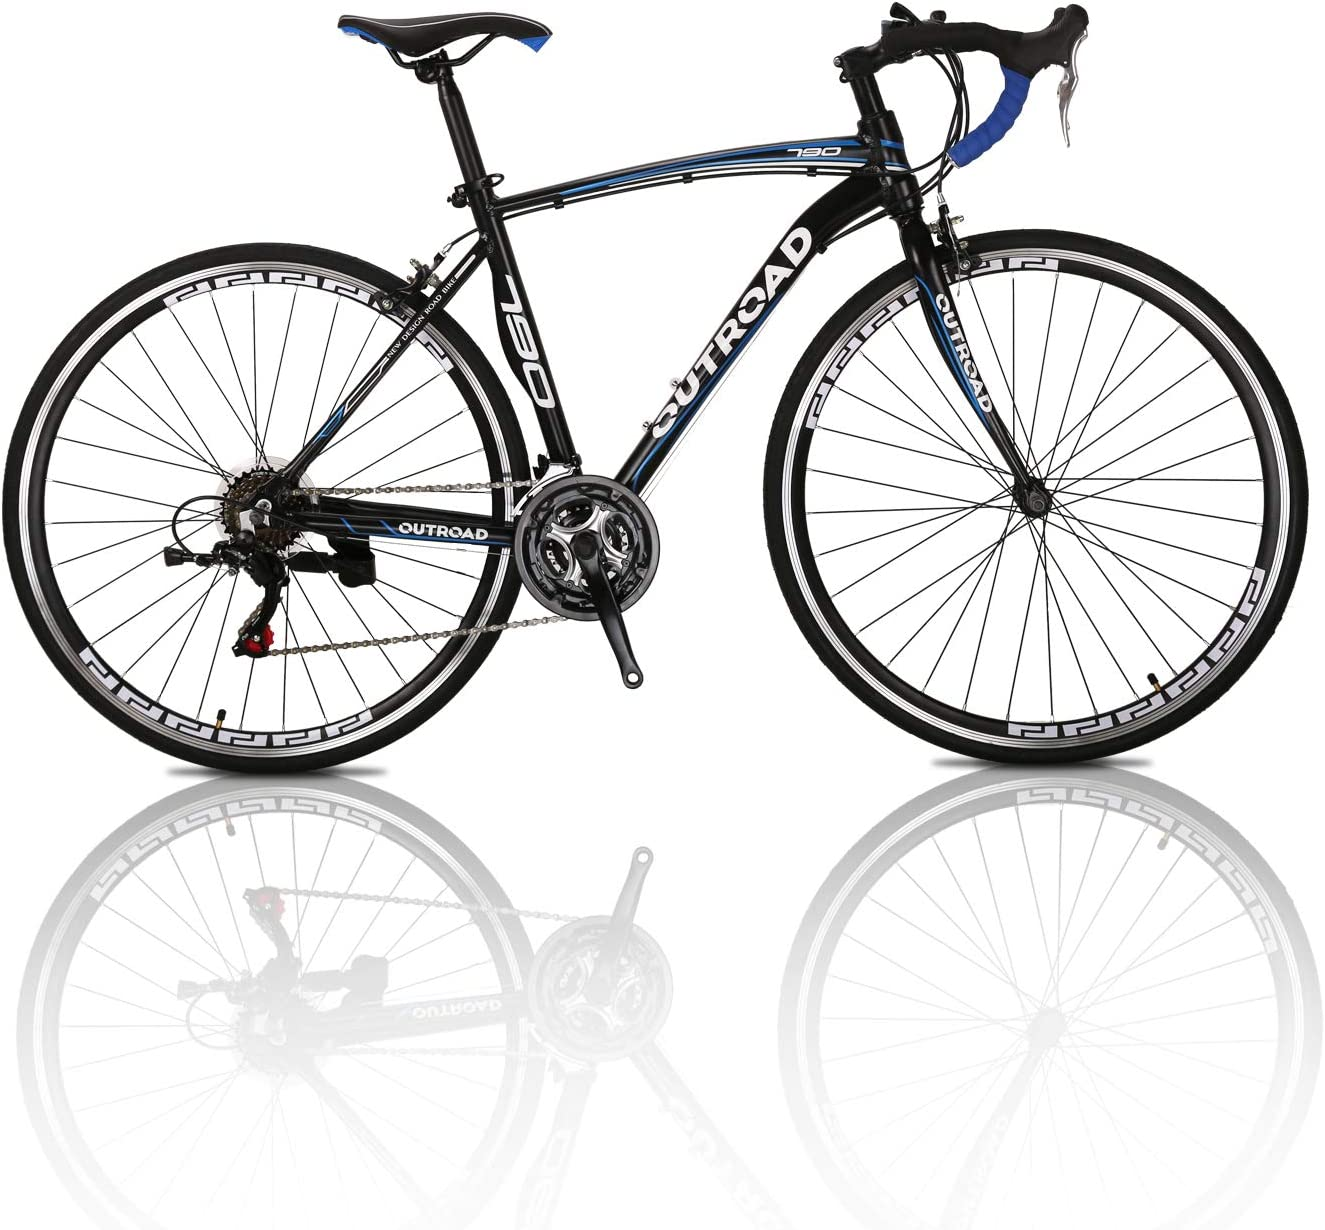 Outroad Road Bike Mountain Bike 700c 21 Speed 26 inch Commuter Bicycle Black, Blue, Silver